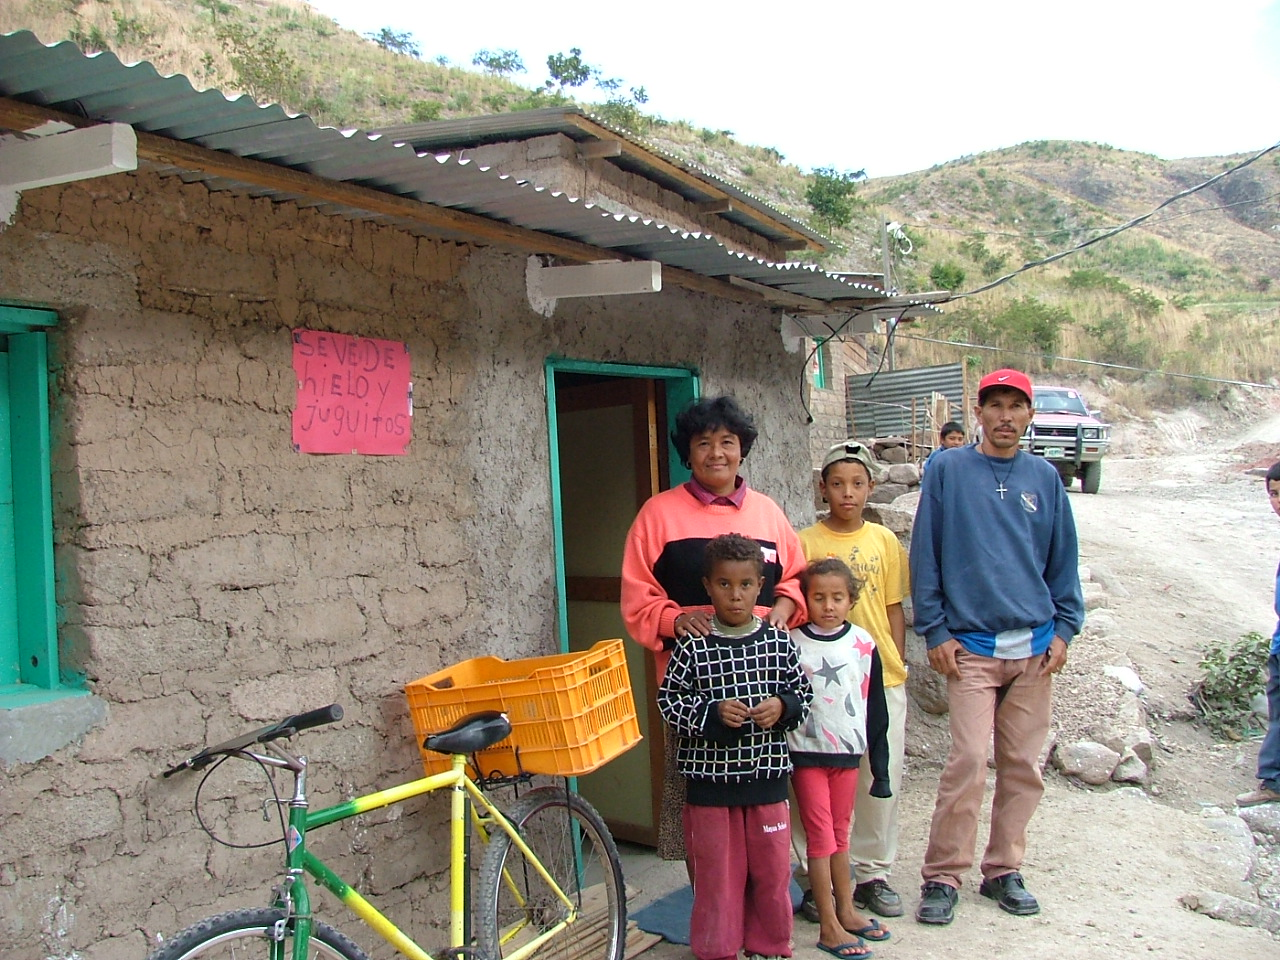 Hilda with her family in front of her house